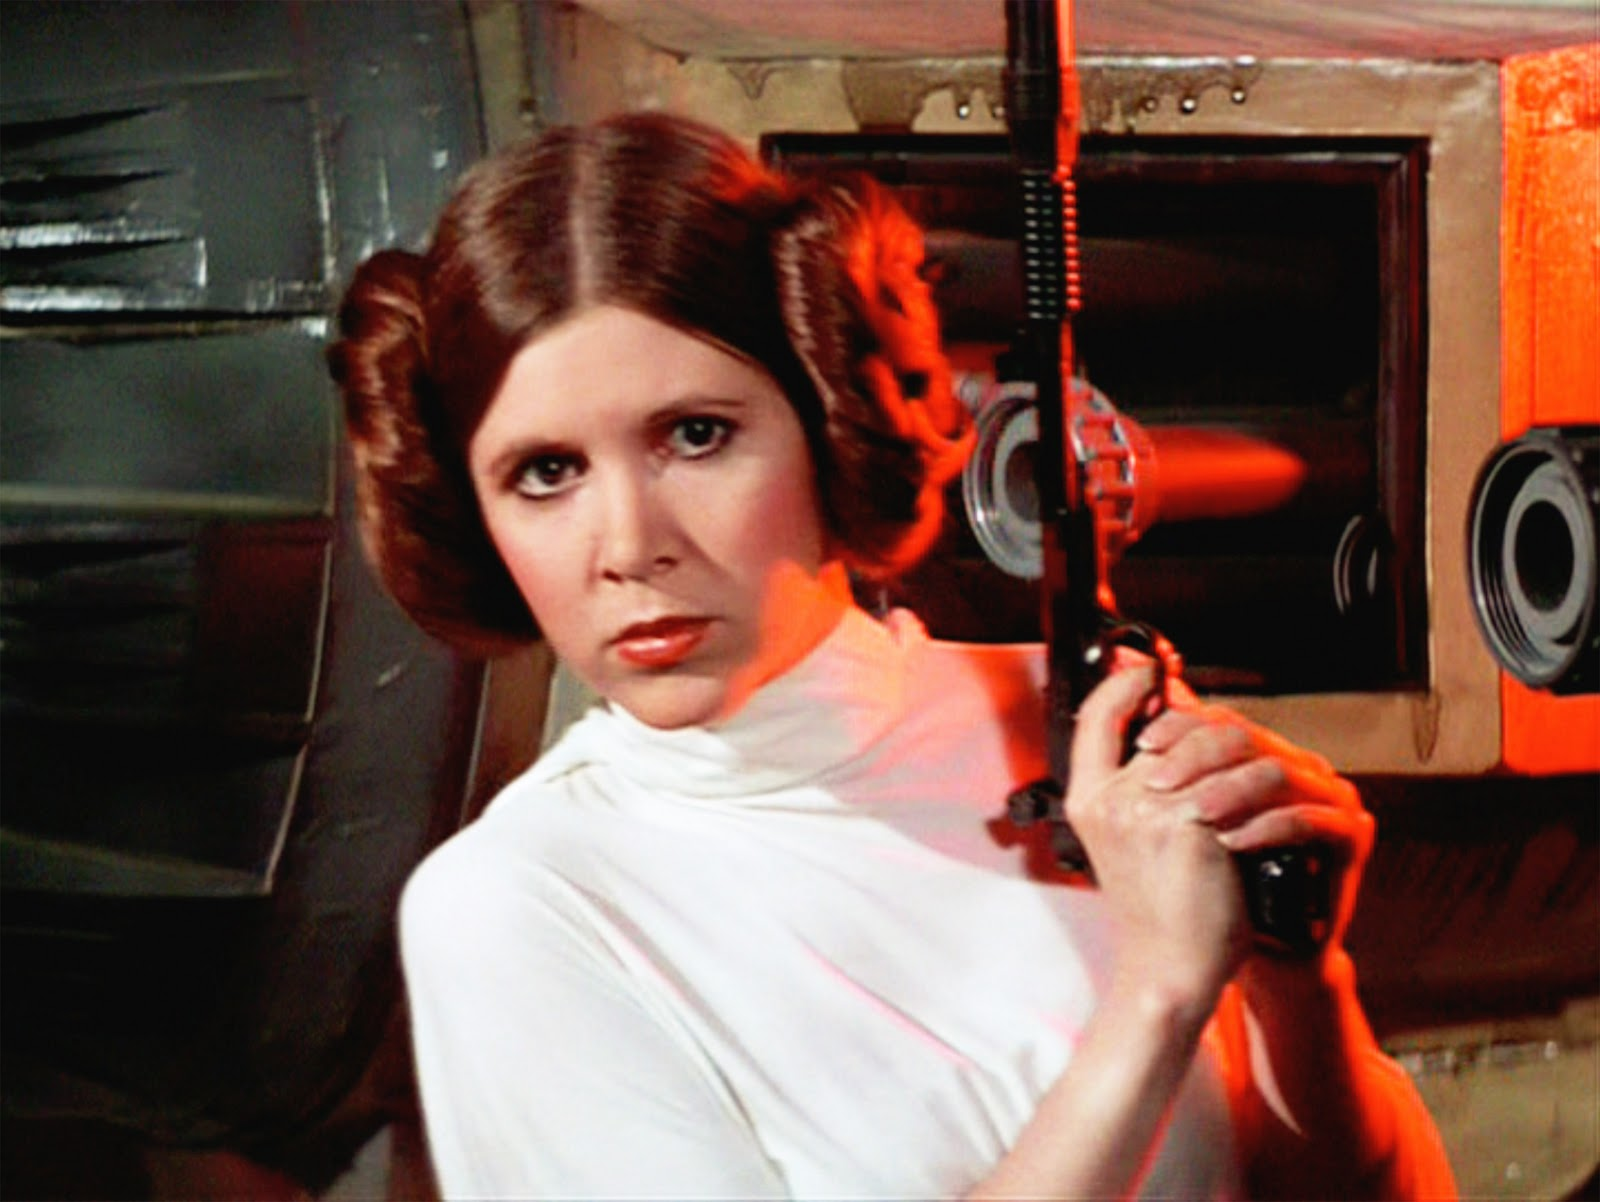 Princess Leia – The Geek's Princess